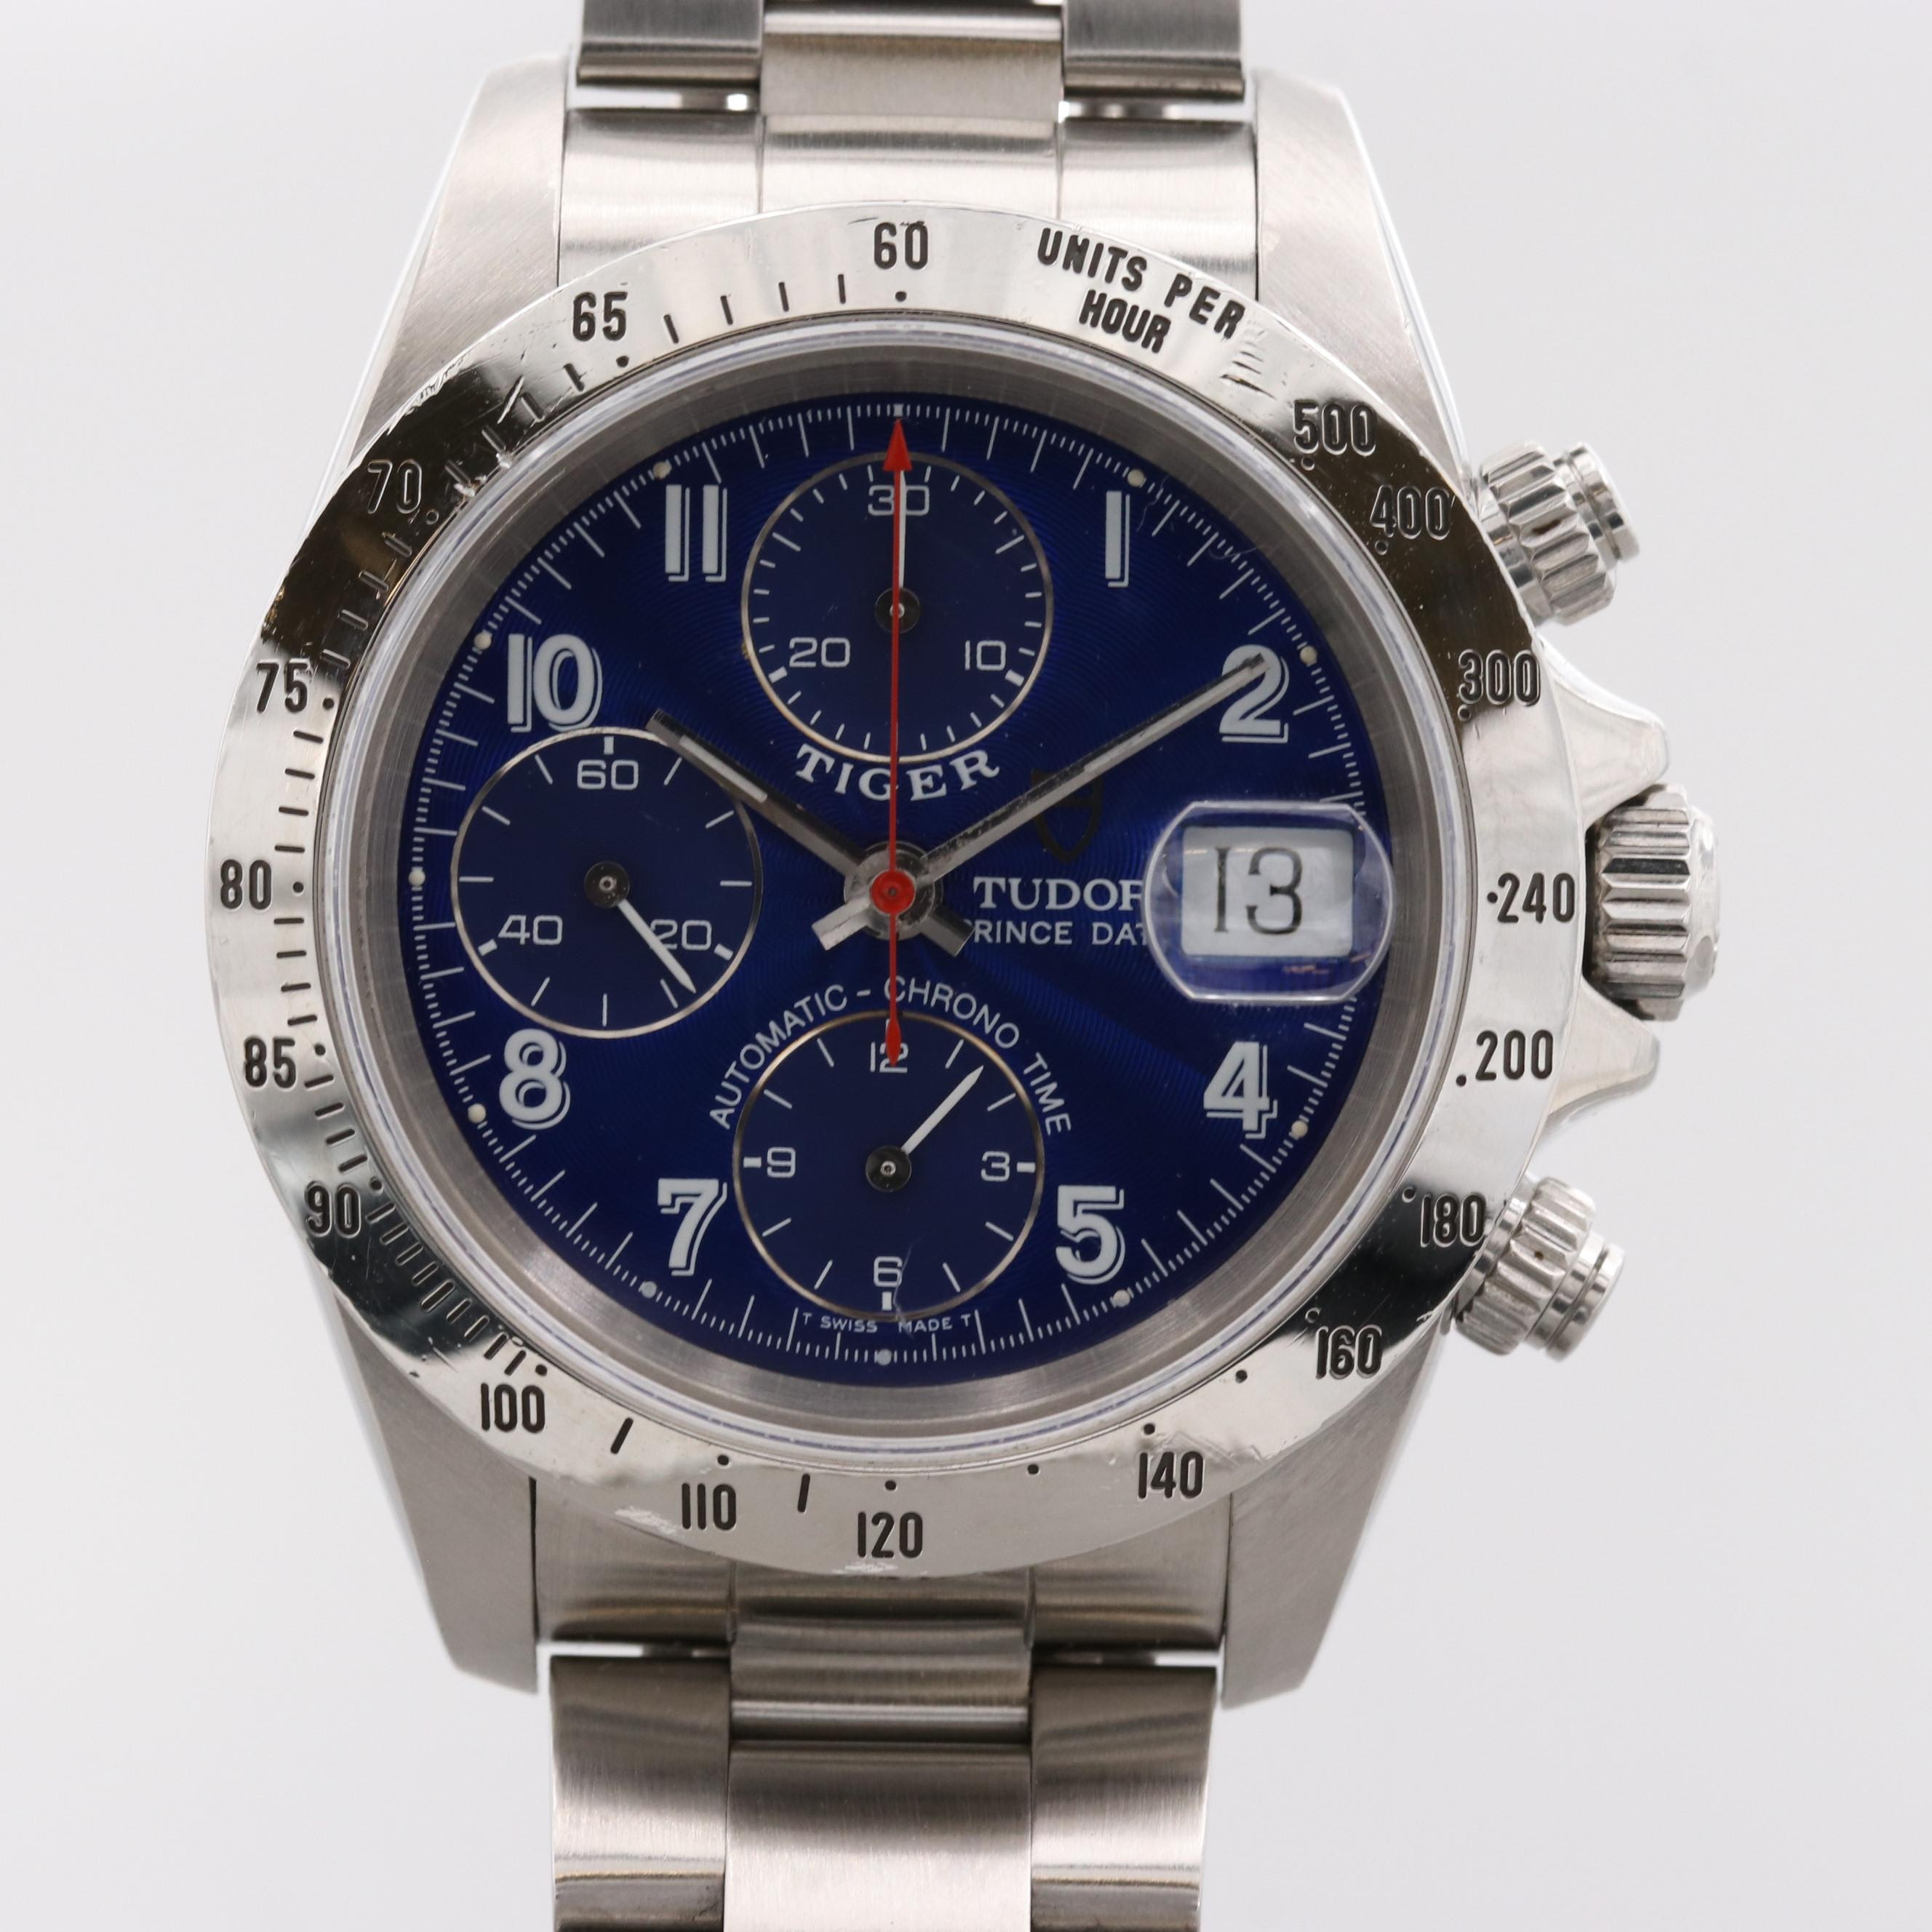 Tudor Tiger Prince Stainless Steel Chronograph Automatic Wristwatch